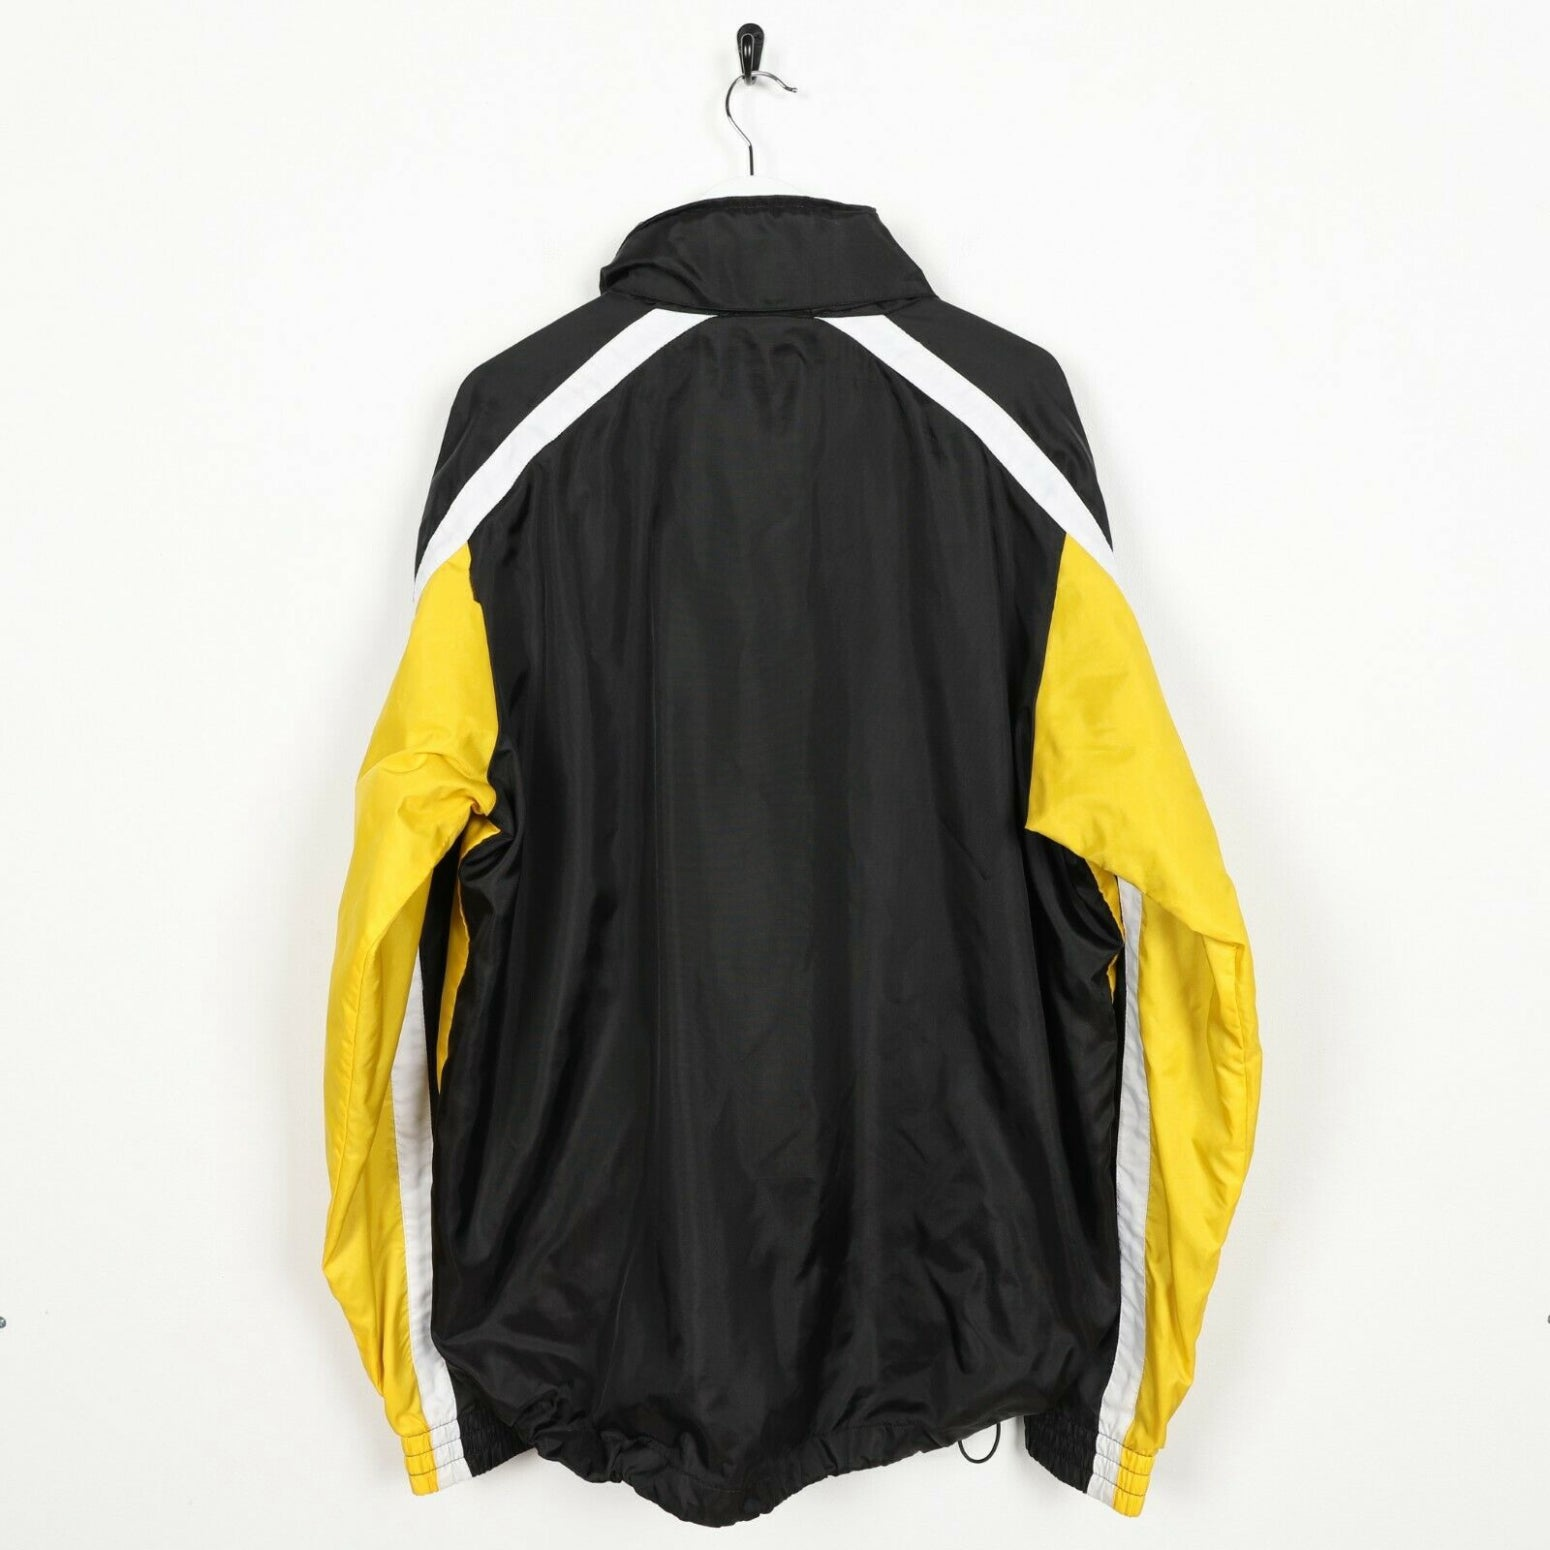 Vintage 90s LOTTO Lightweight Coat Jacket Black Yellow XL